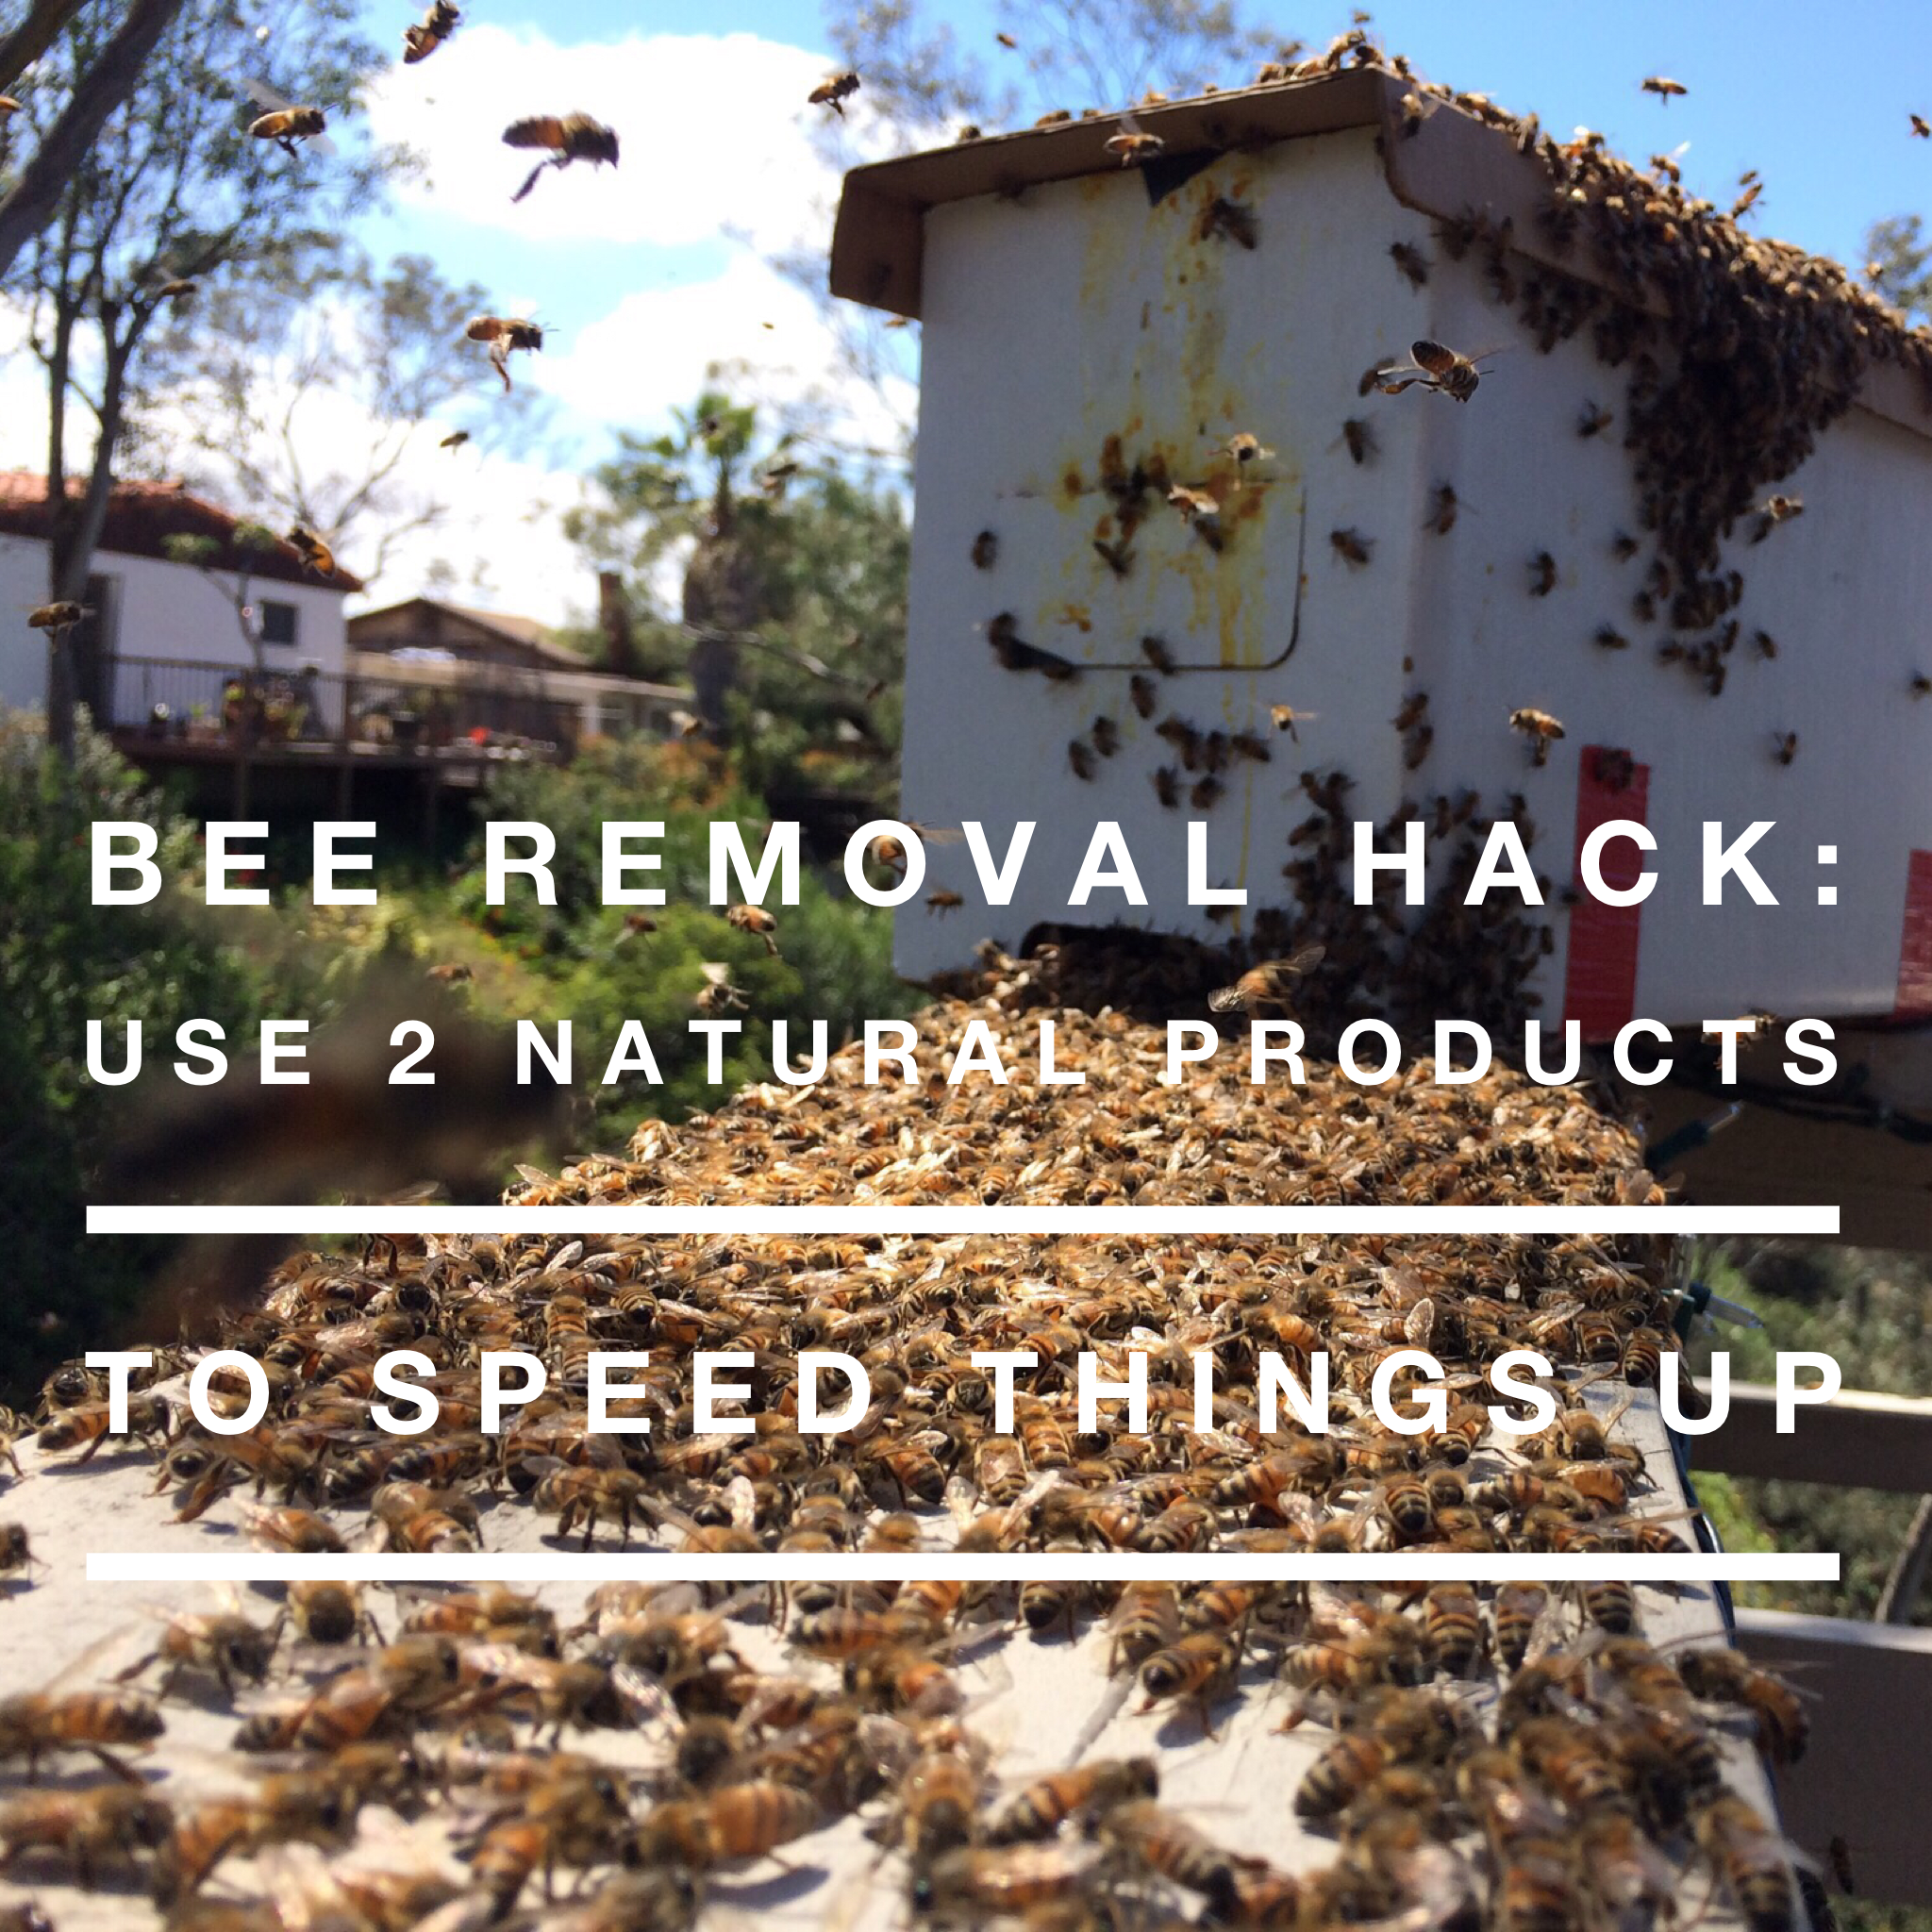 Beekeeping Lifehack: 2 Natural Products for Bee Removals